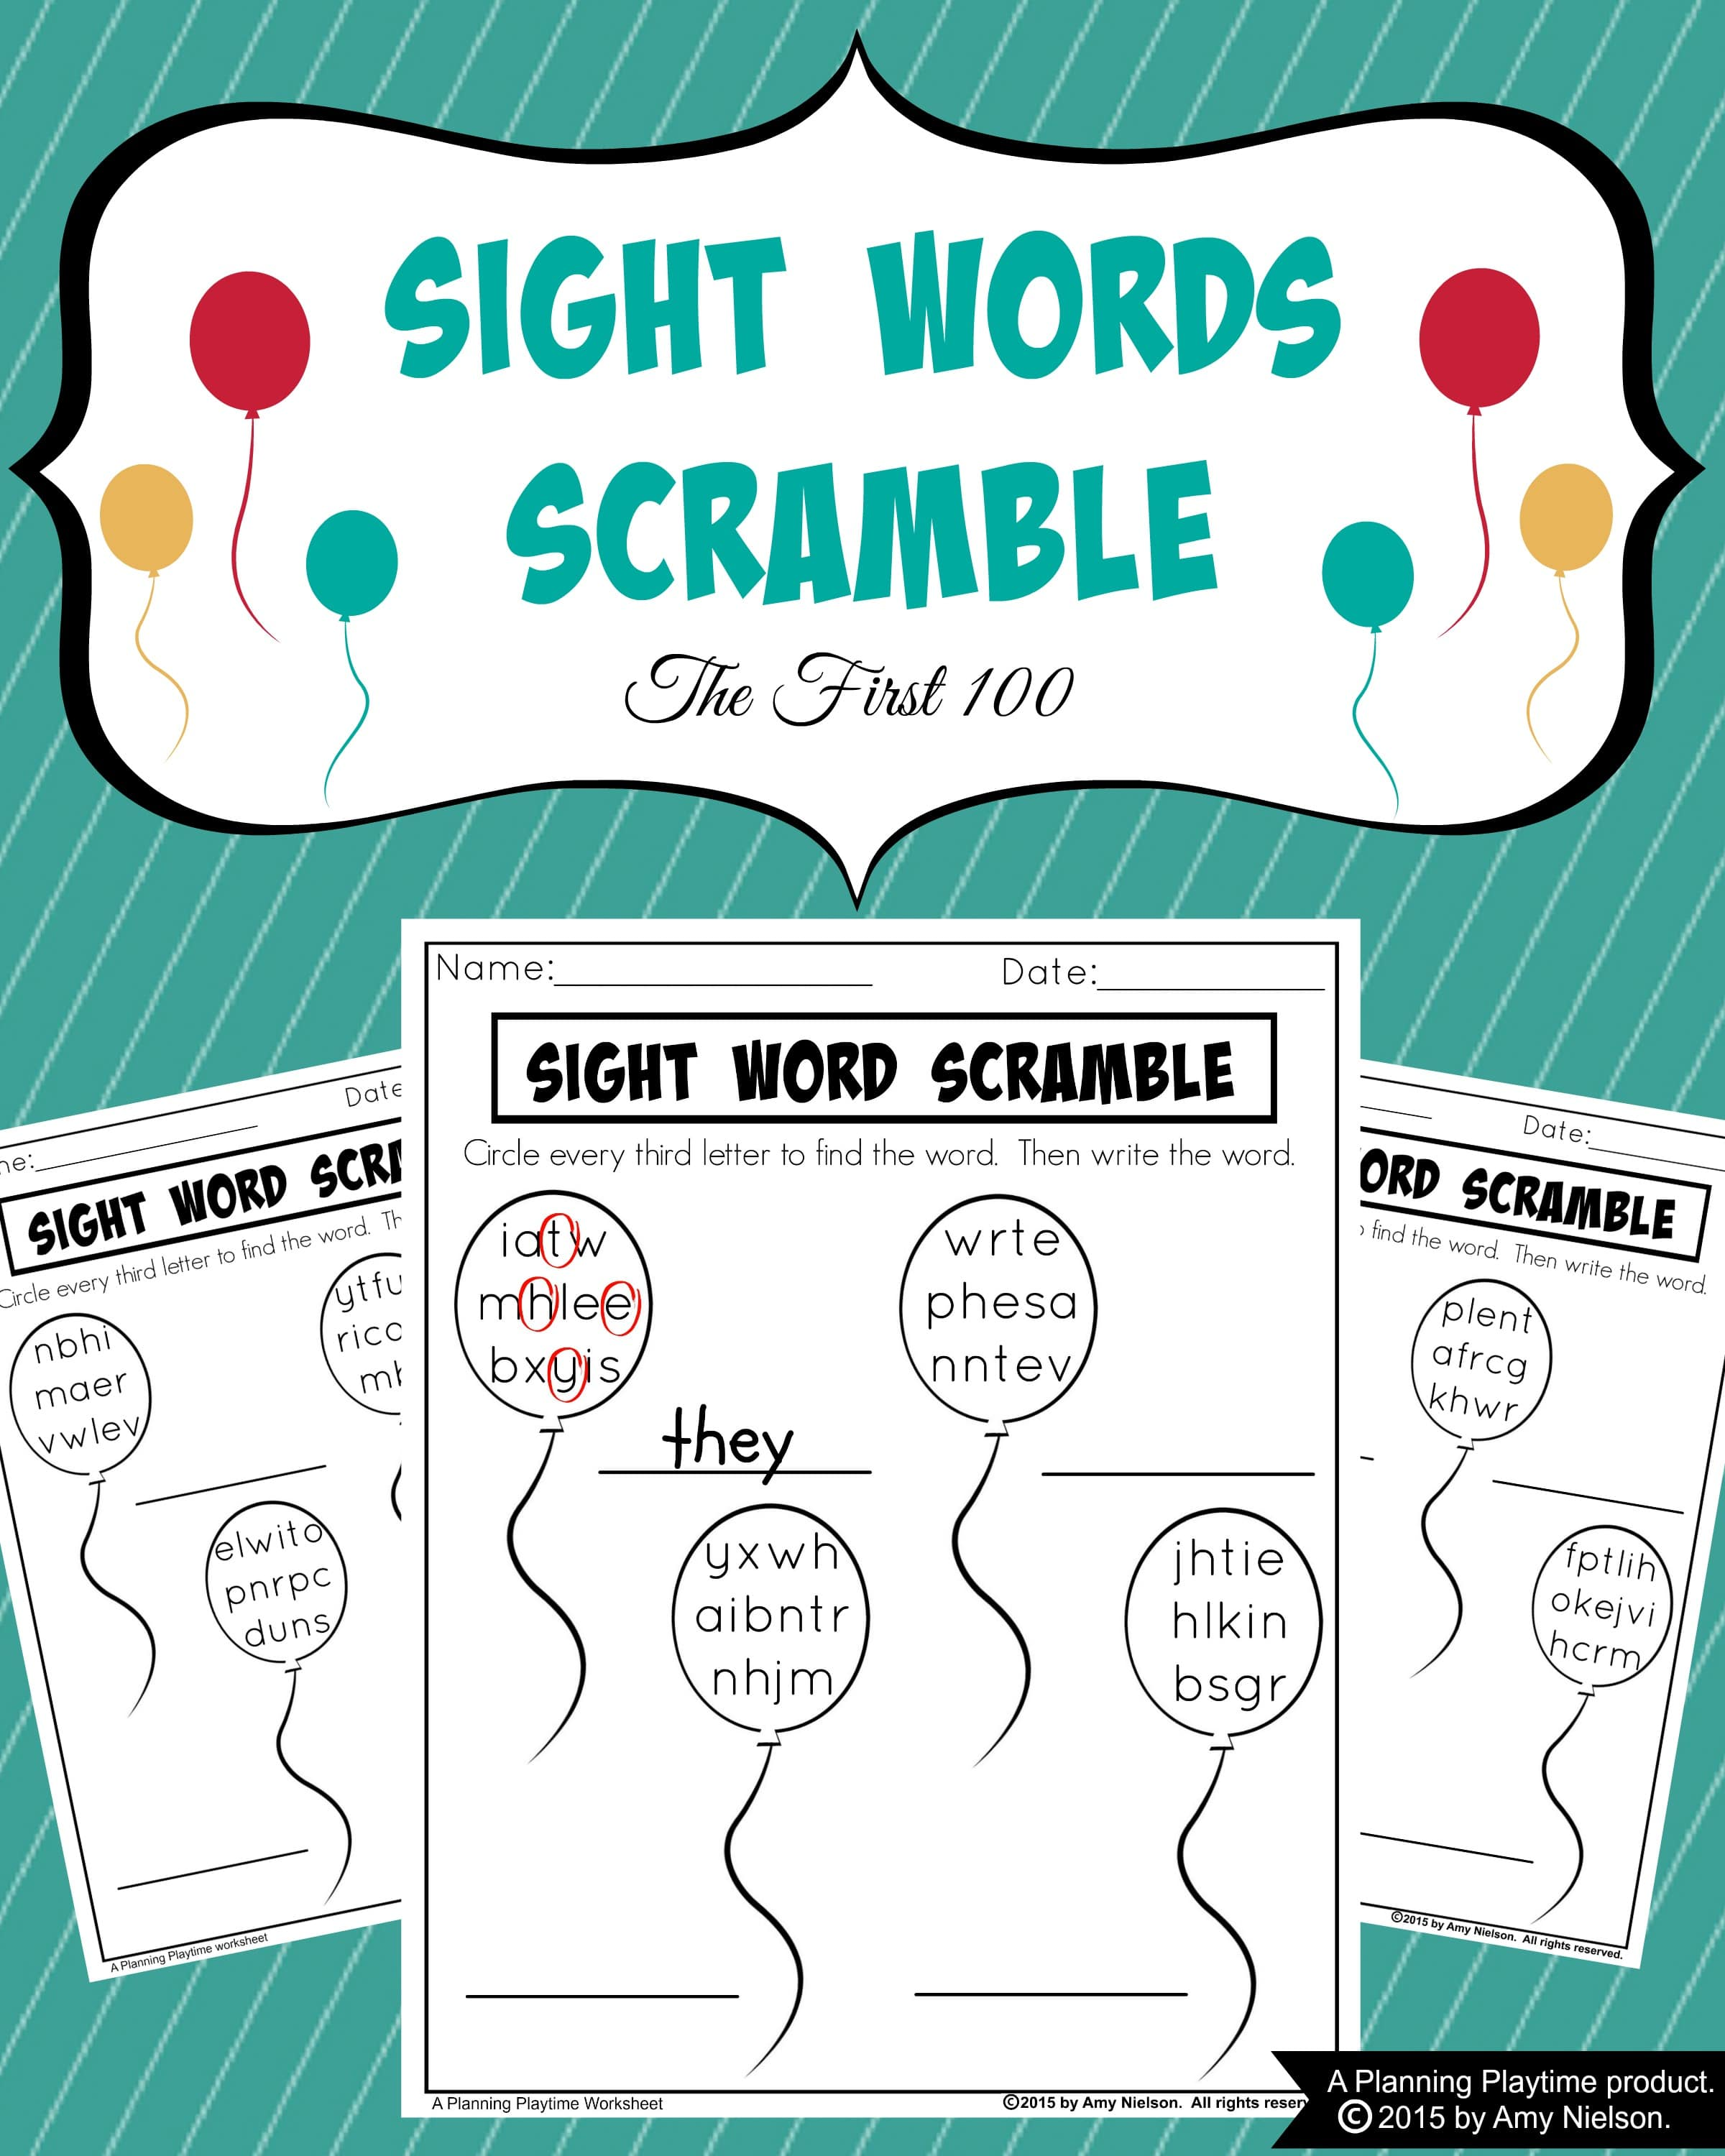 worksheet 1st Grade Sight Words Worksheets sight words scramble worksheets planning playtime worksheet for kindergarten and 1st grade reading